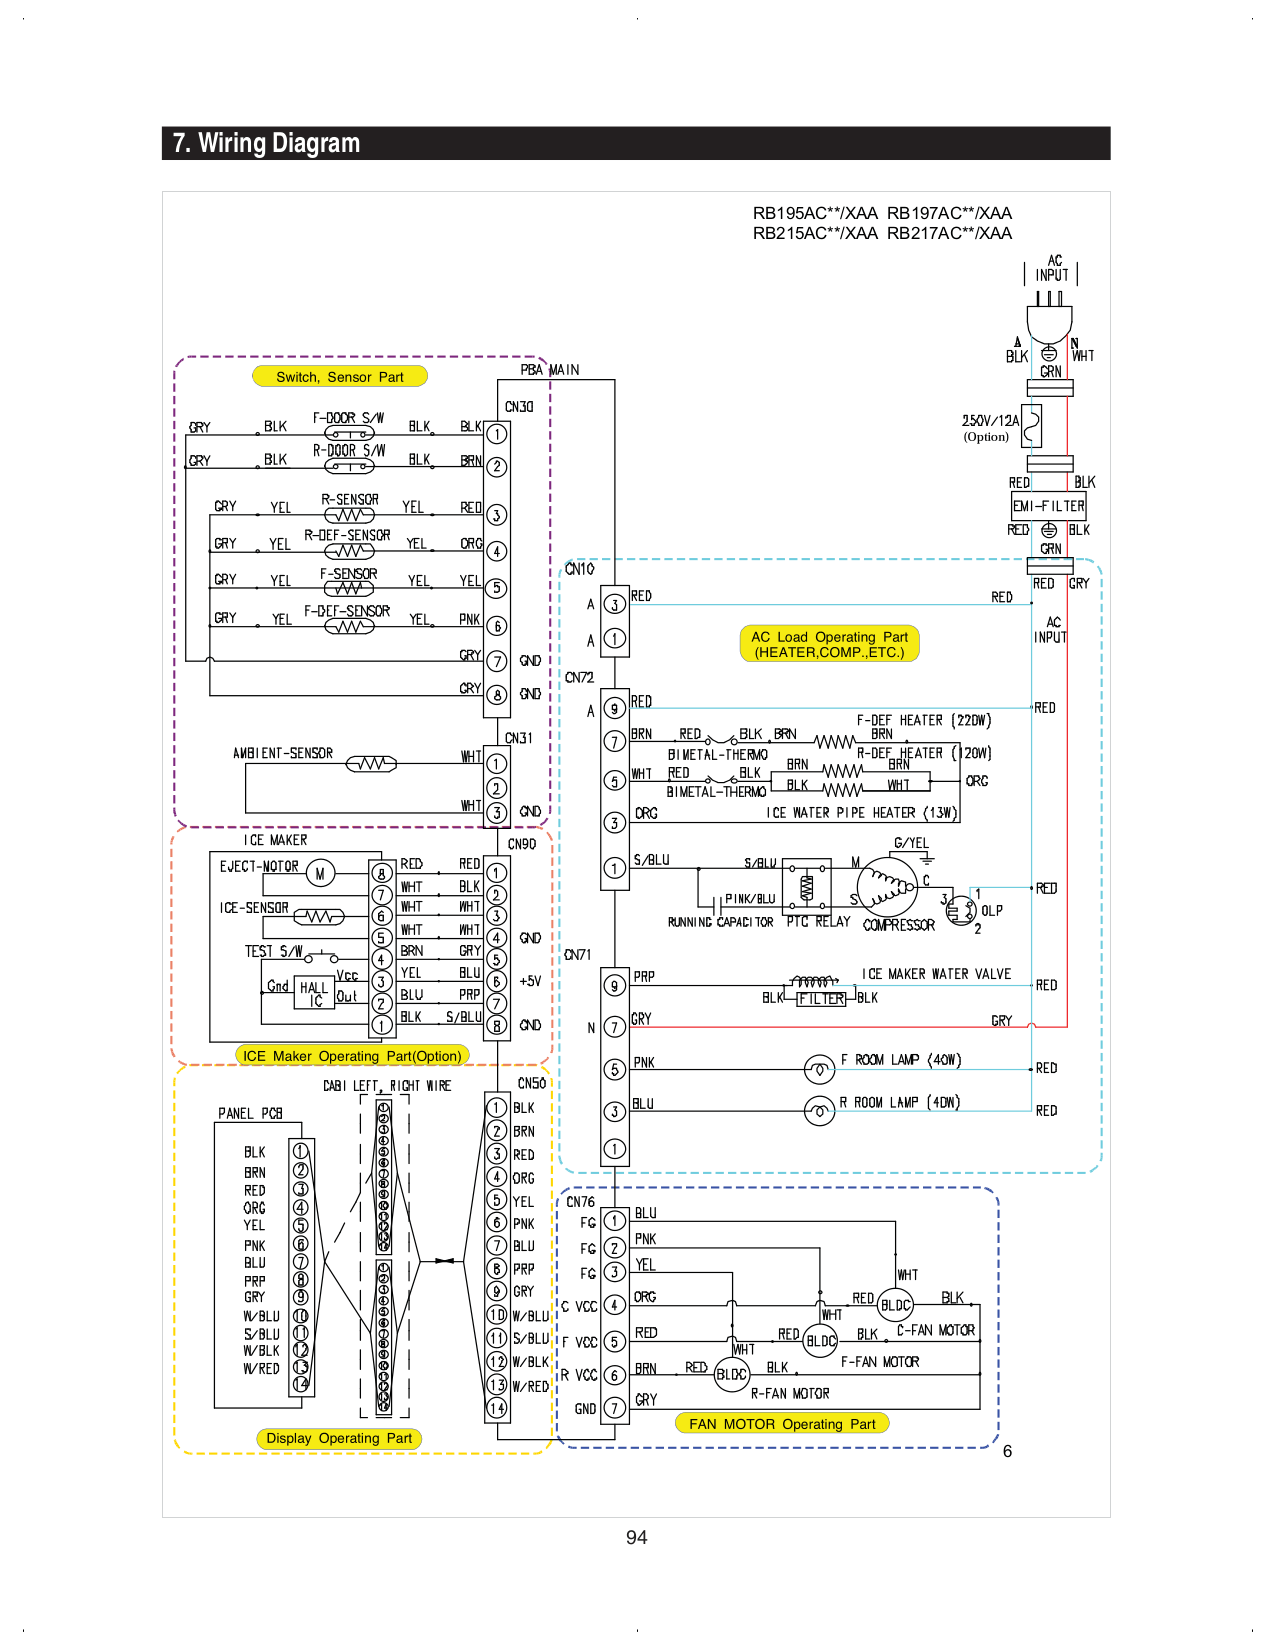 PDF manual for Samsung Refrigerator RB195AC